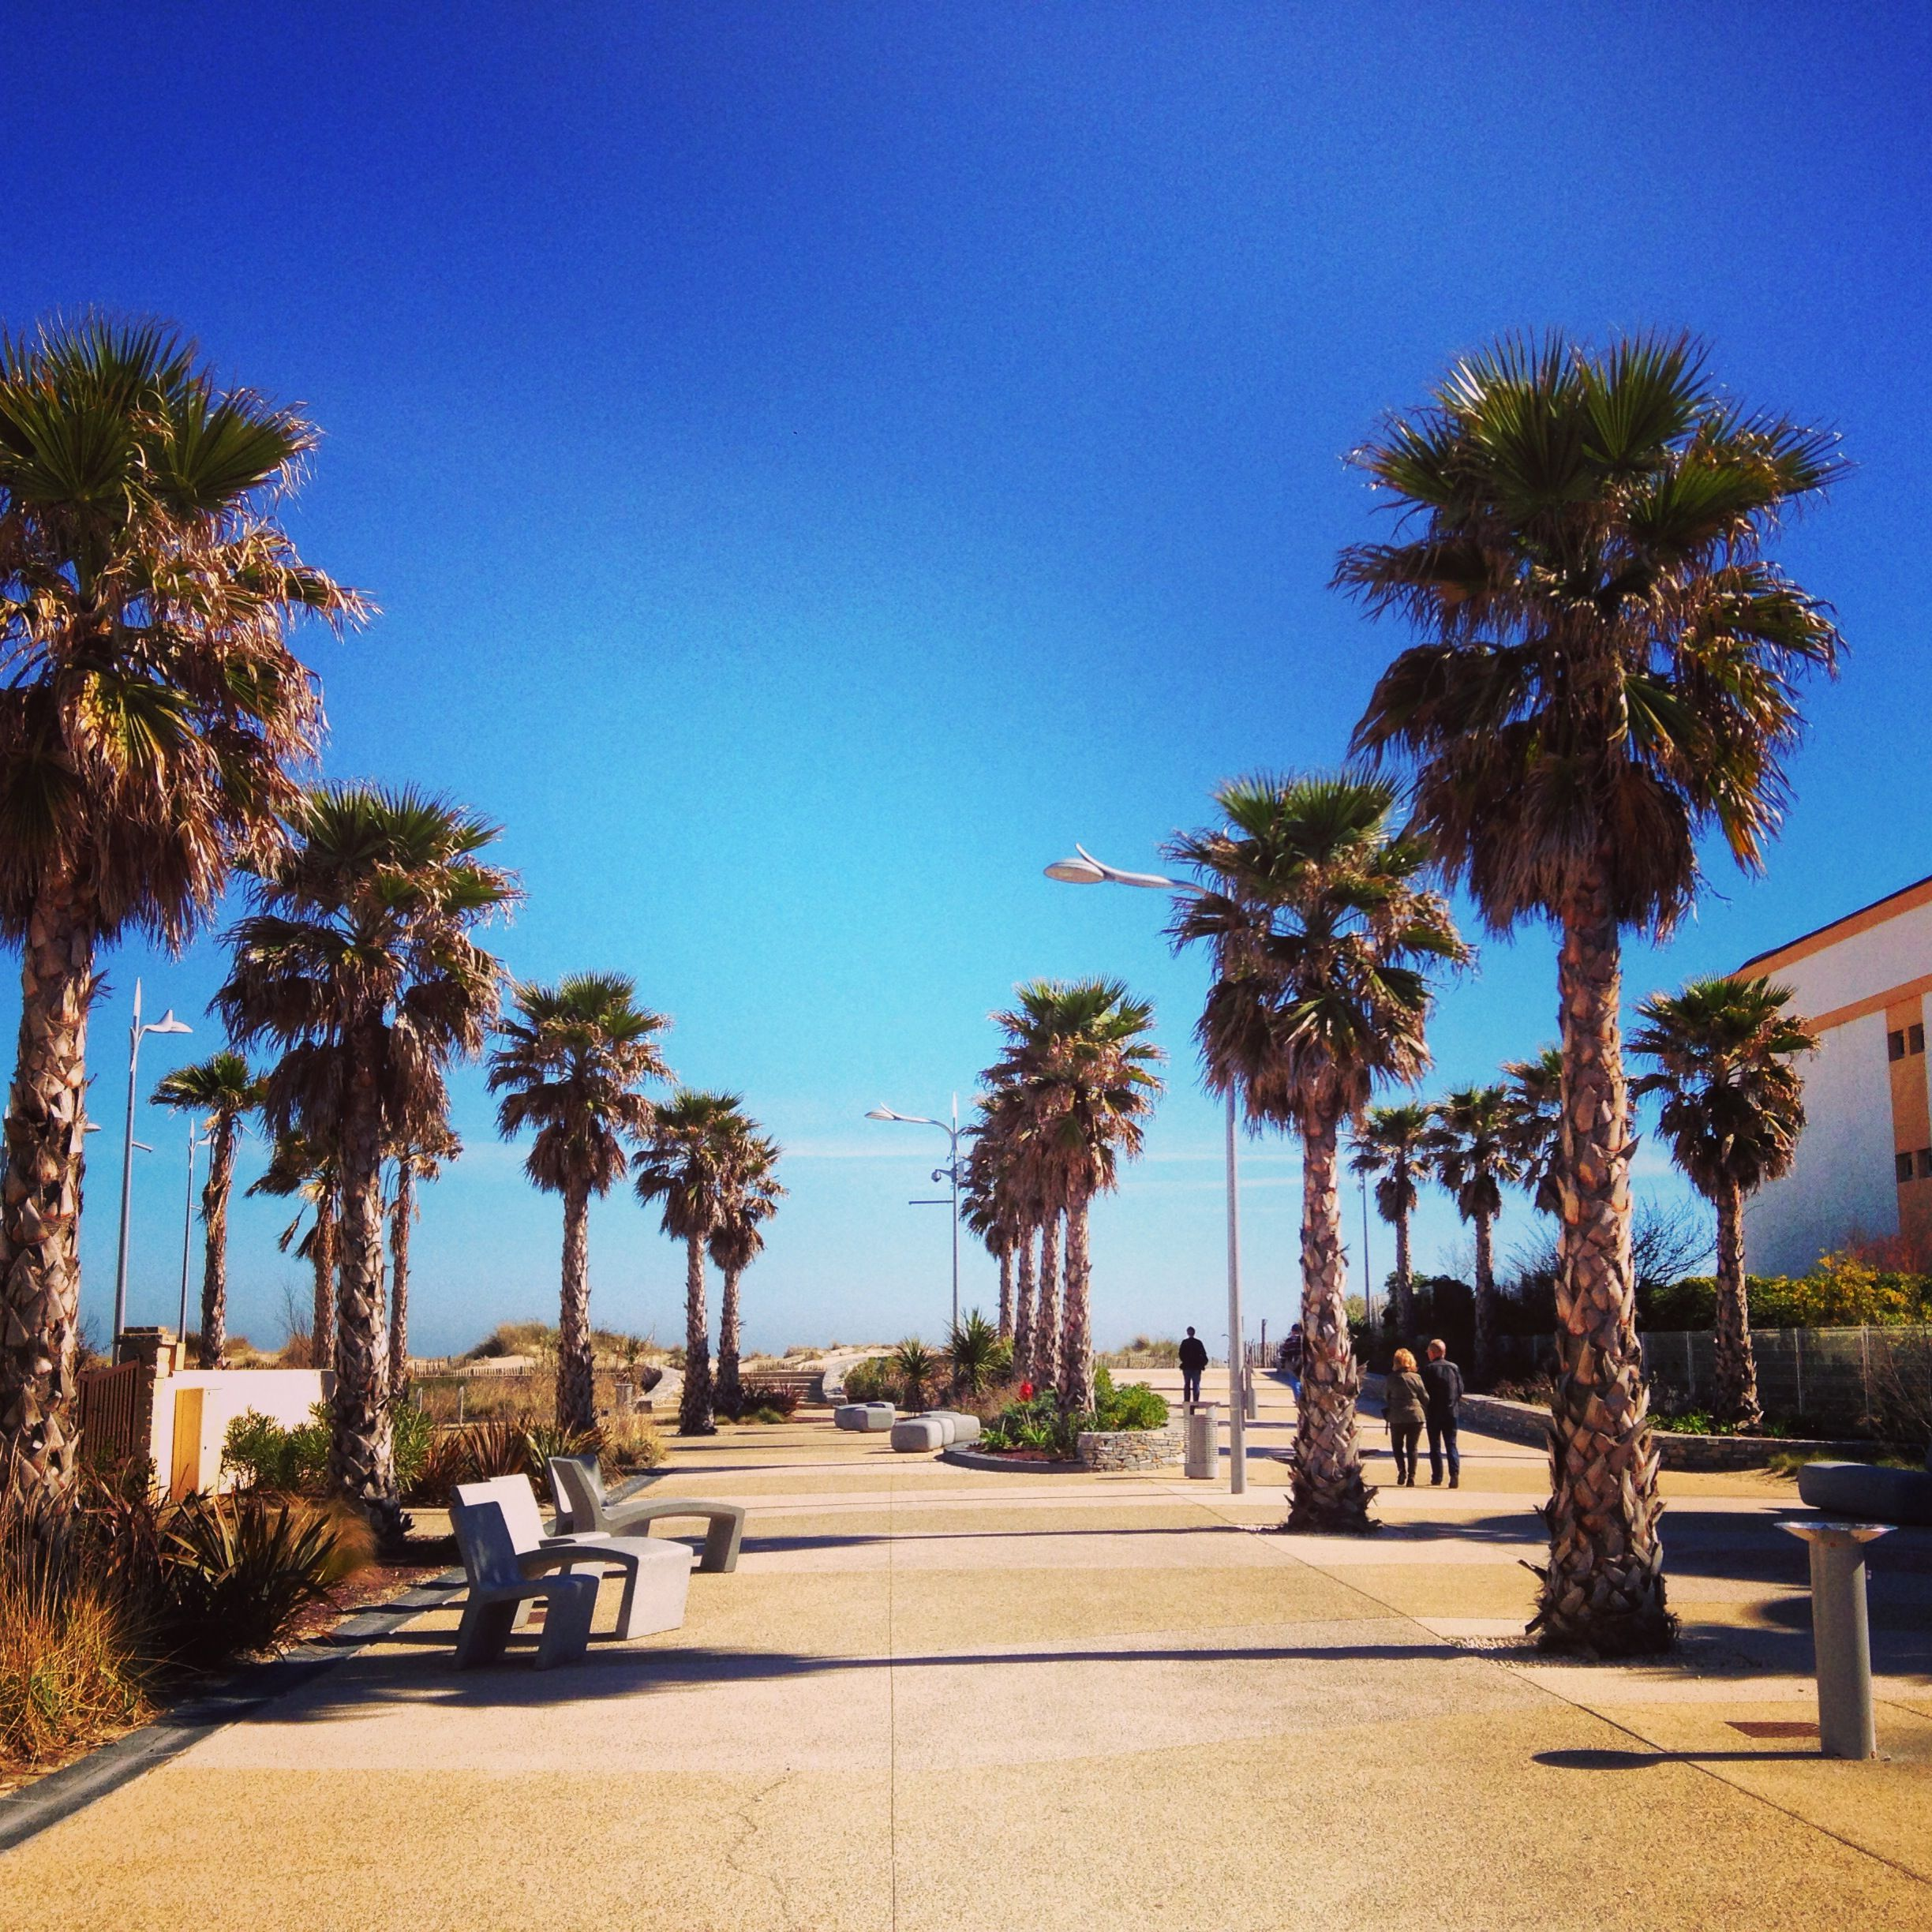 Best Places For Holiday In June: Marseillan Plage, Languedoc. France #march #marseillan